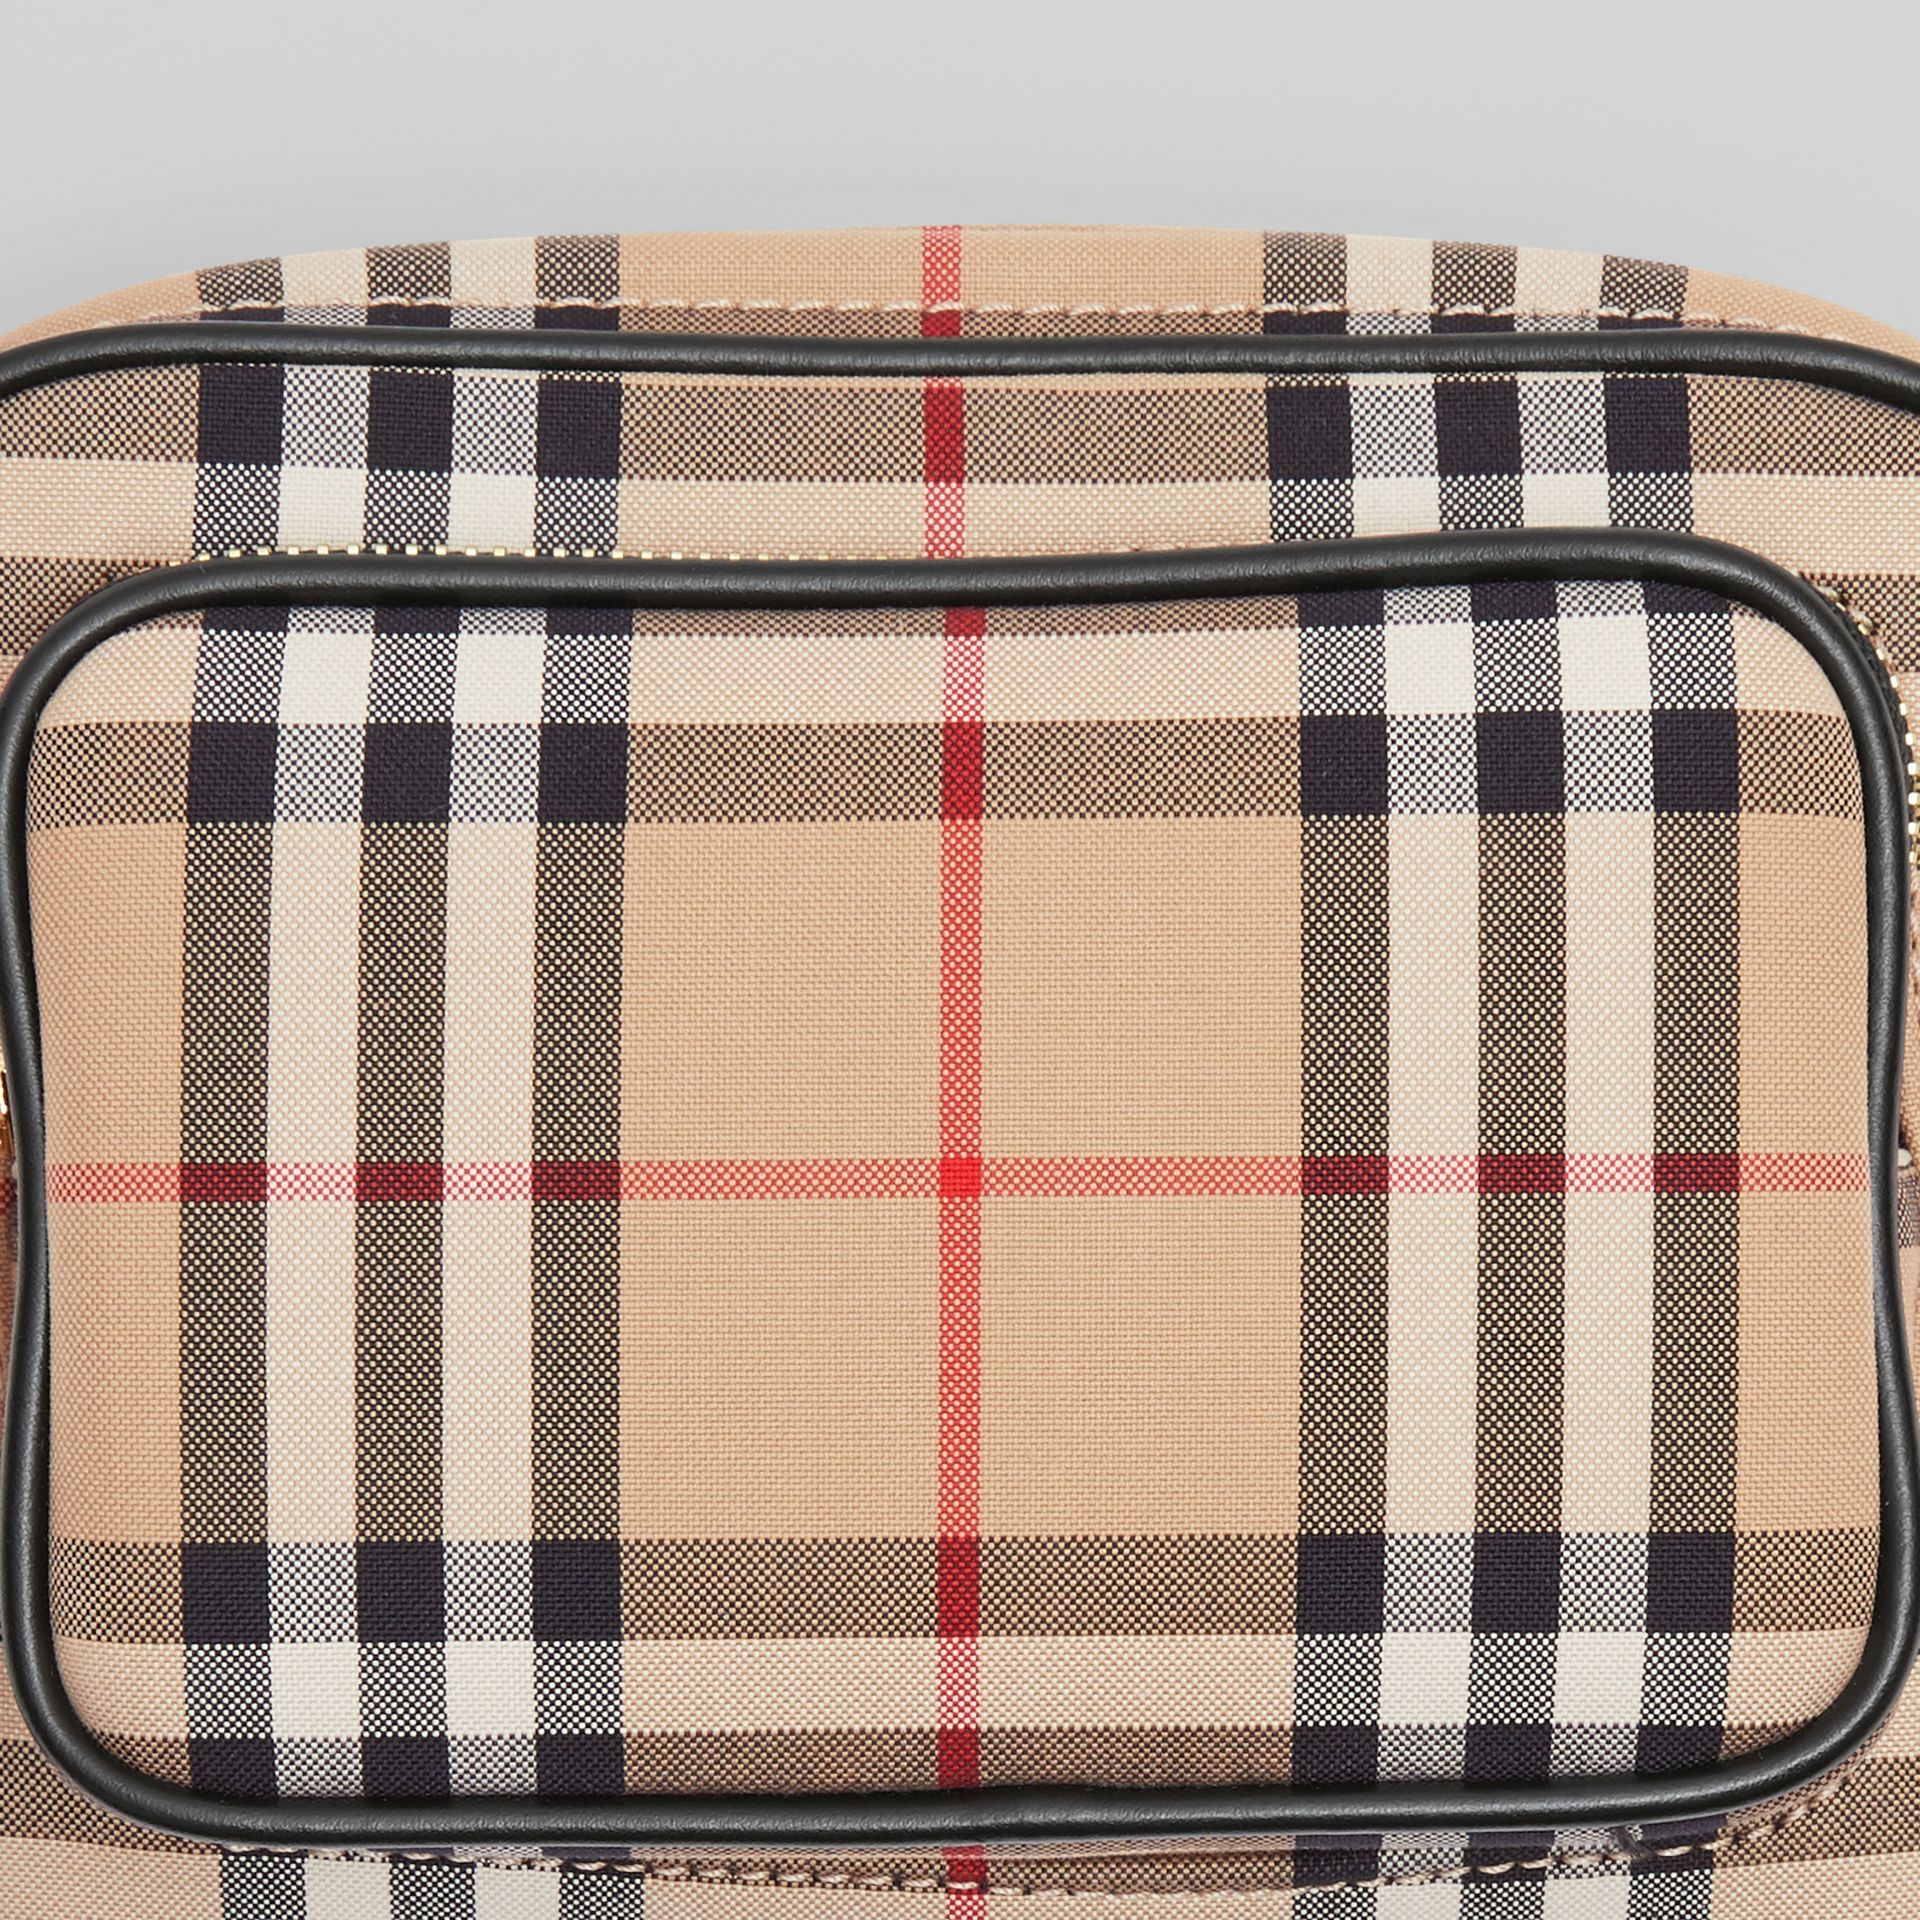 Vintage Check Cotton Camera Bag in Archive Beige - Women | Burberry Australia - gallery image 1